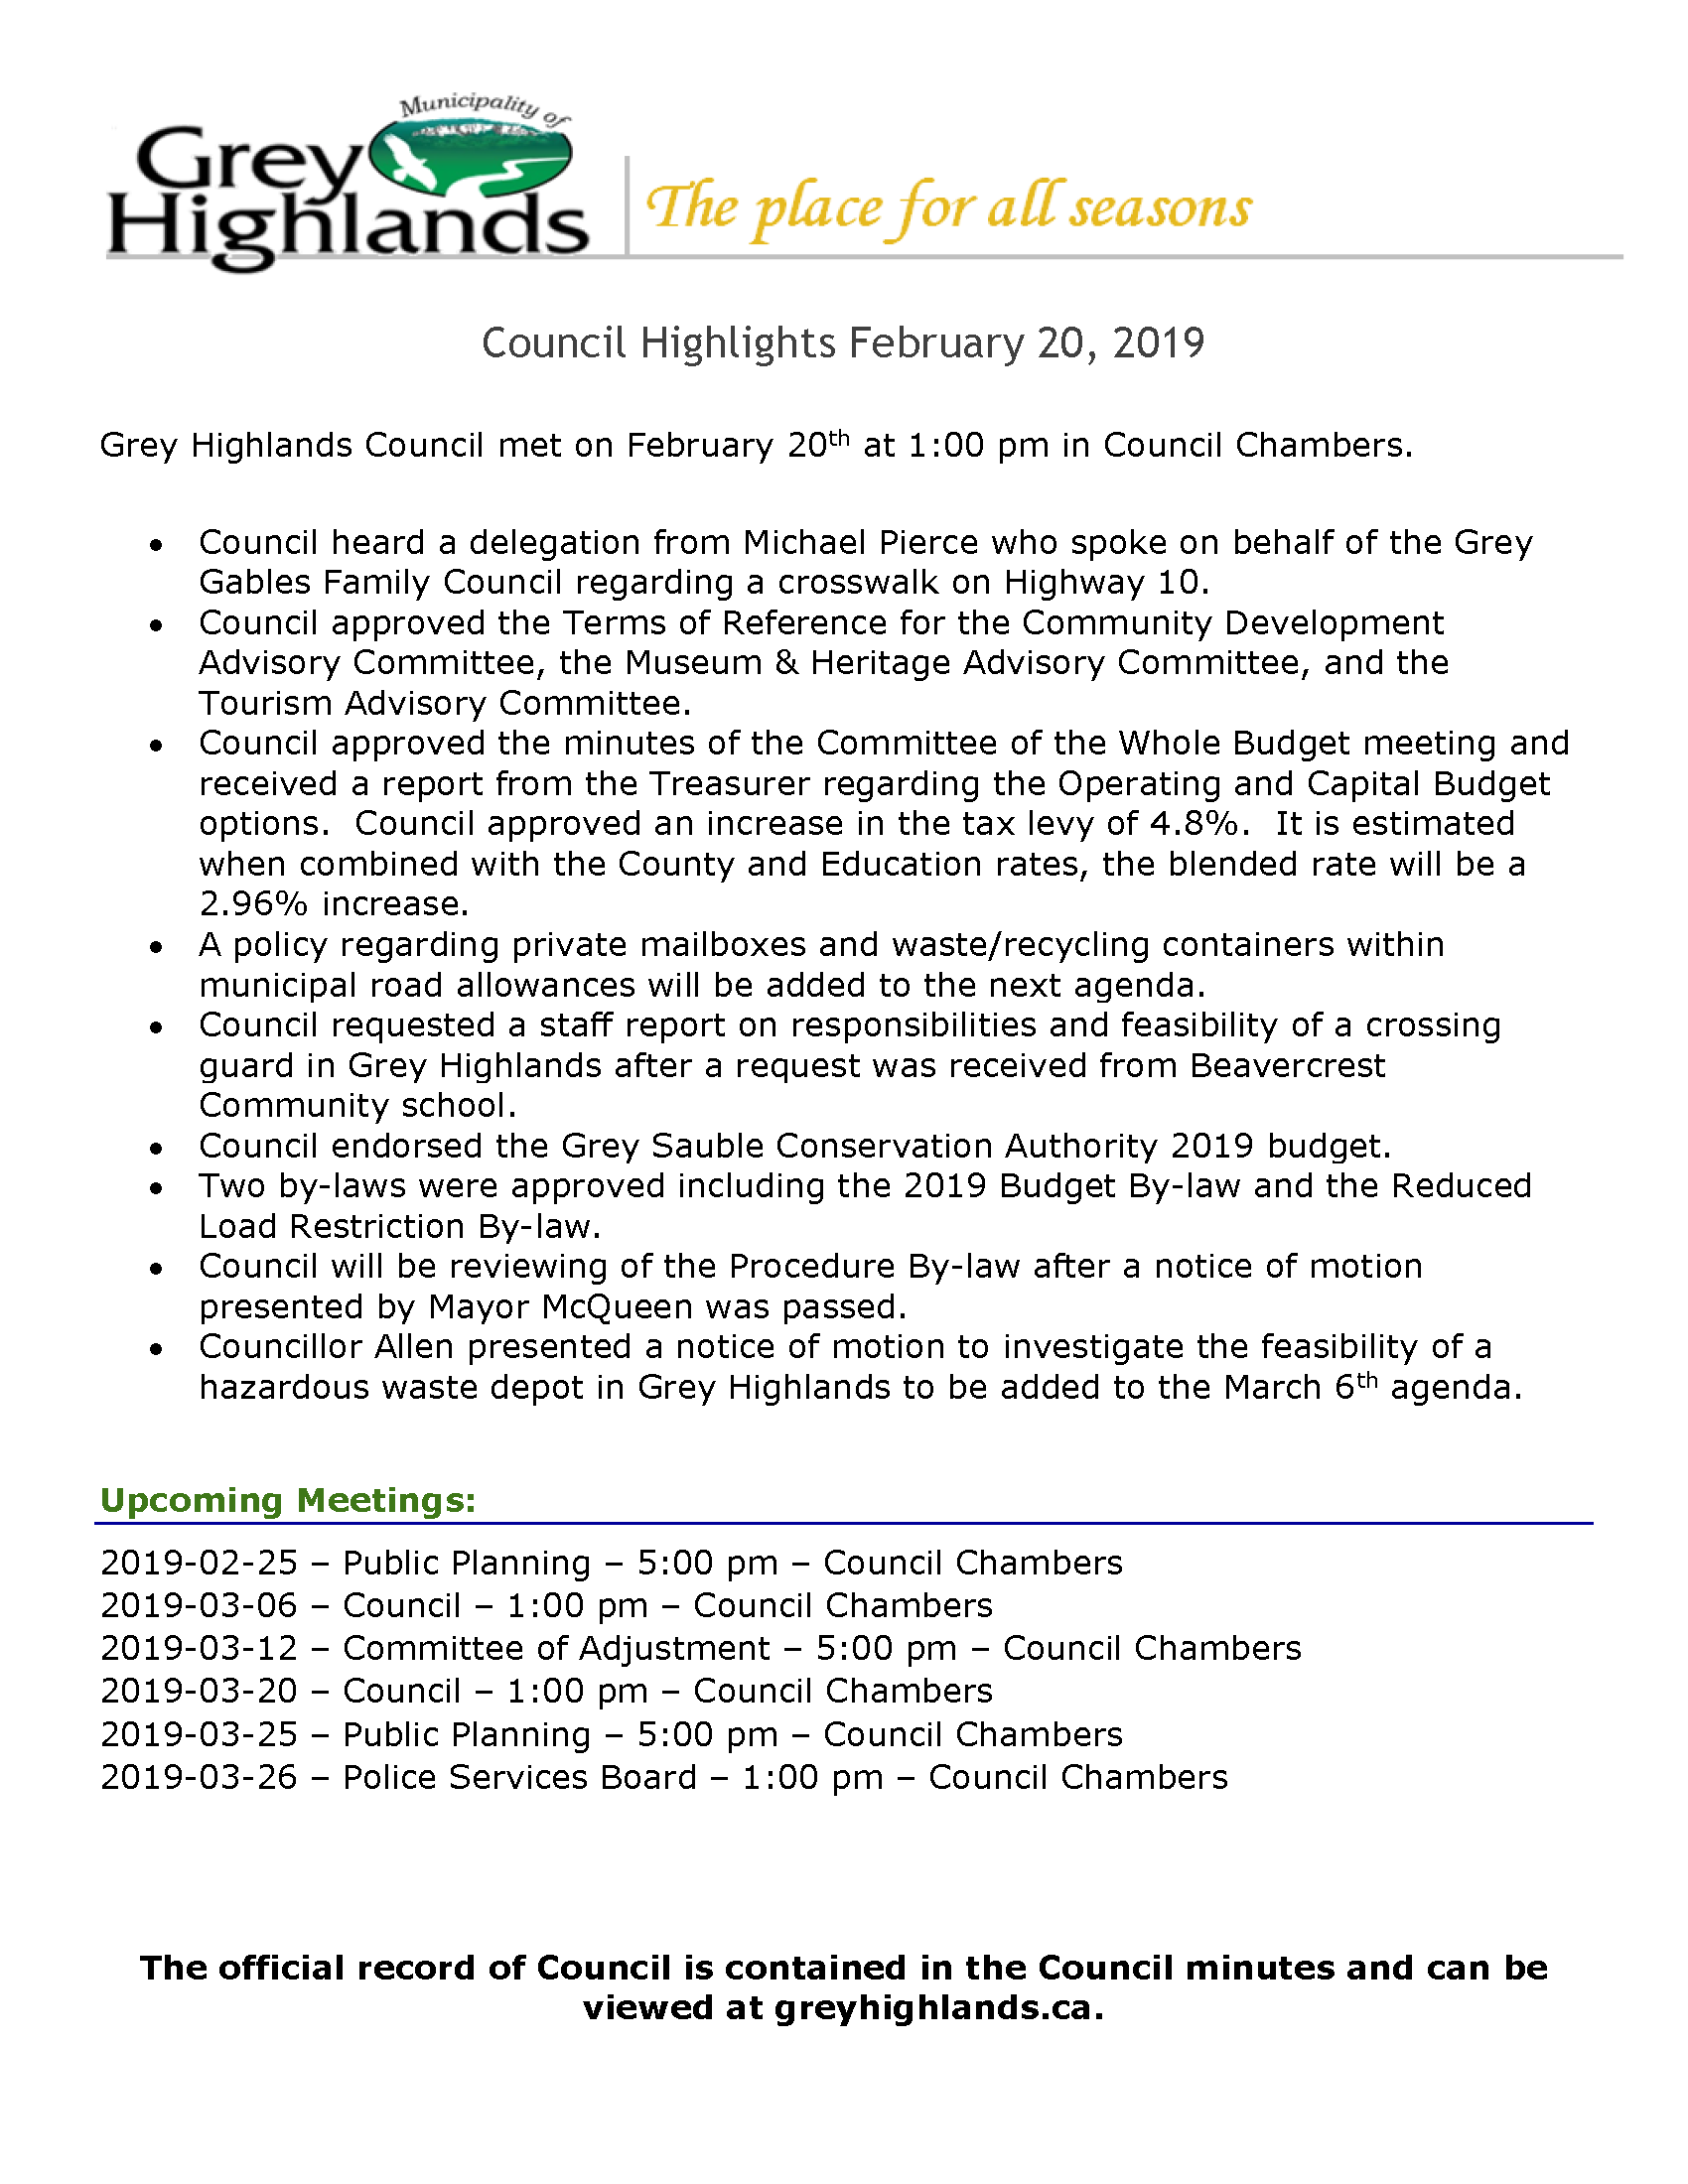 Council Highlights - February 20, 2019